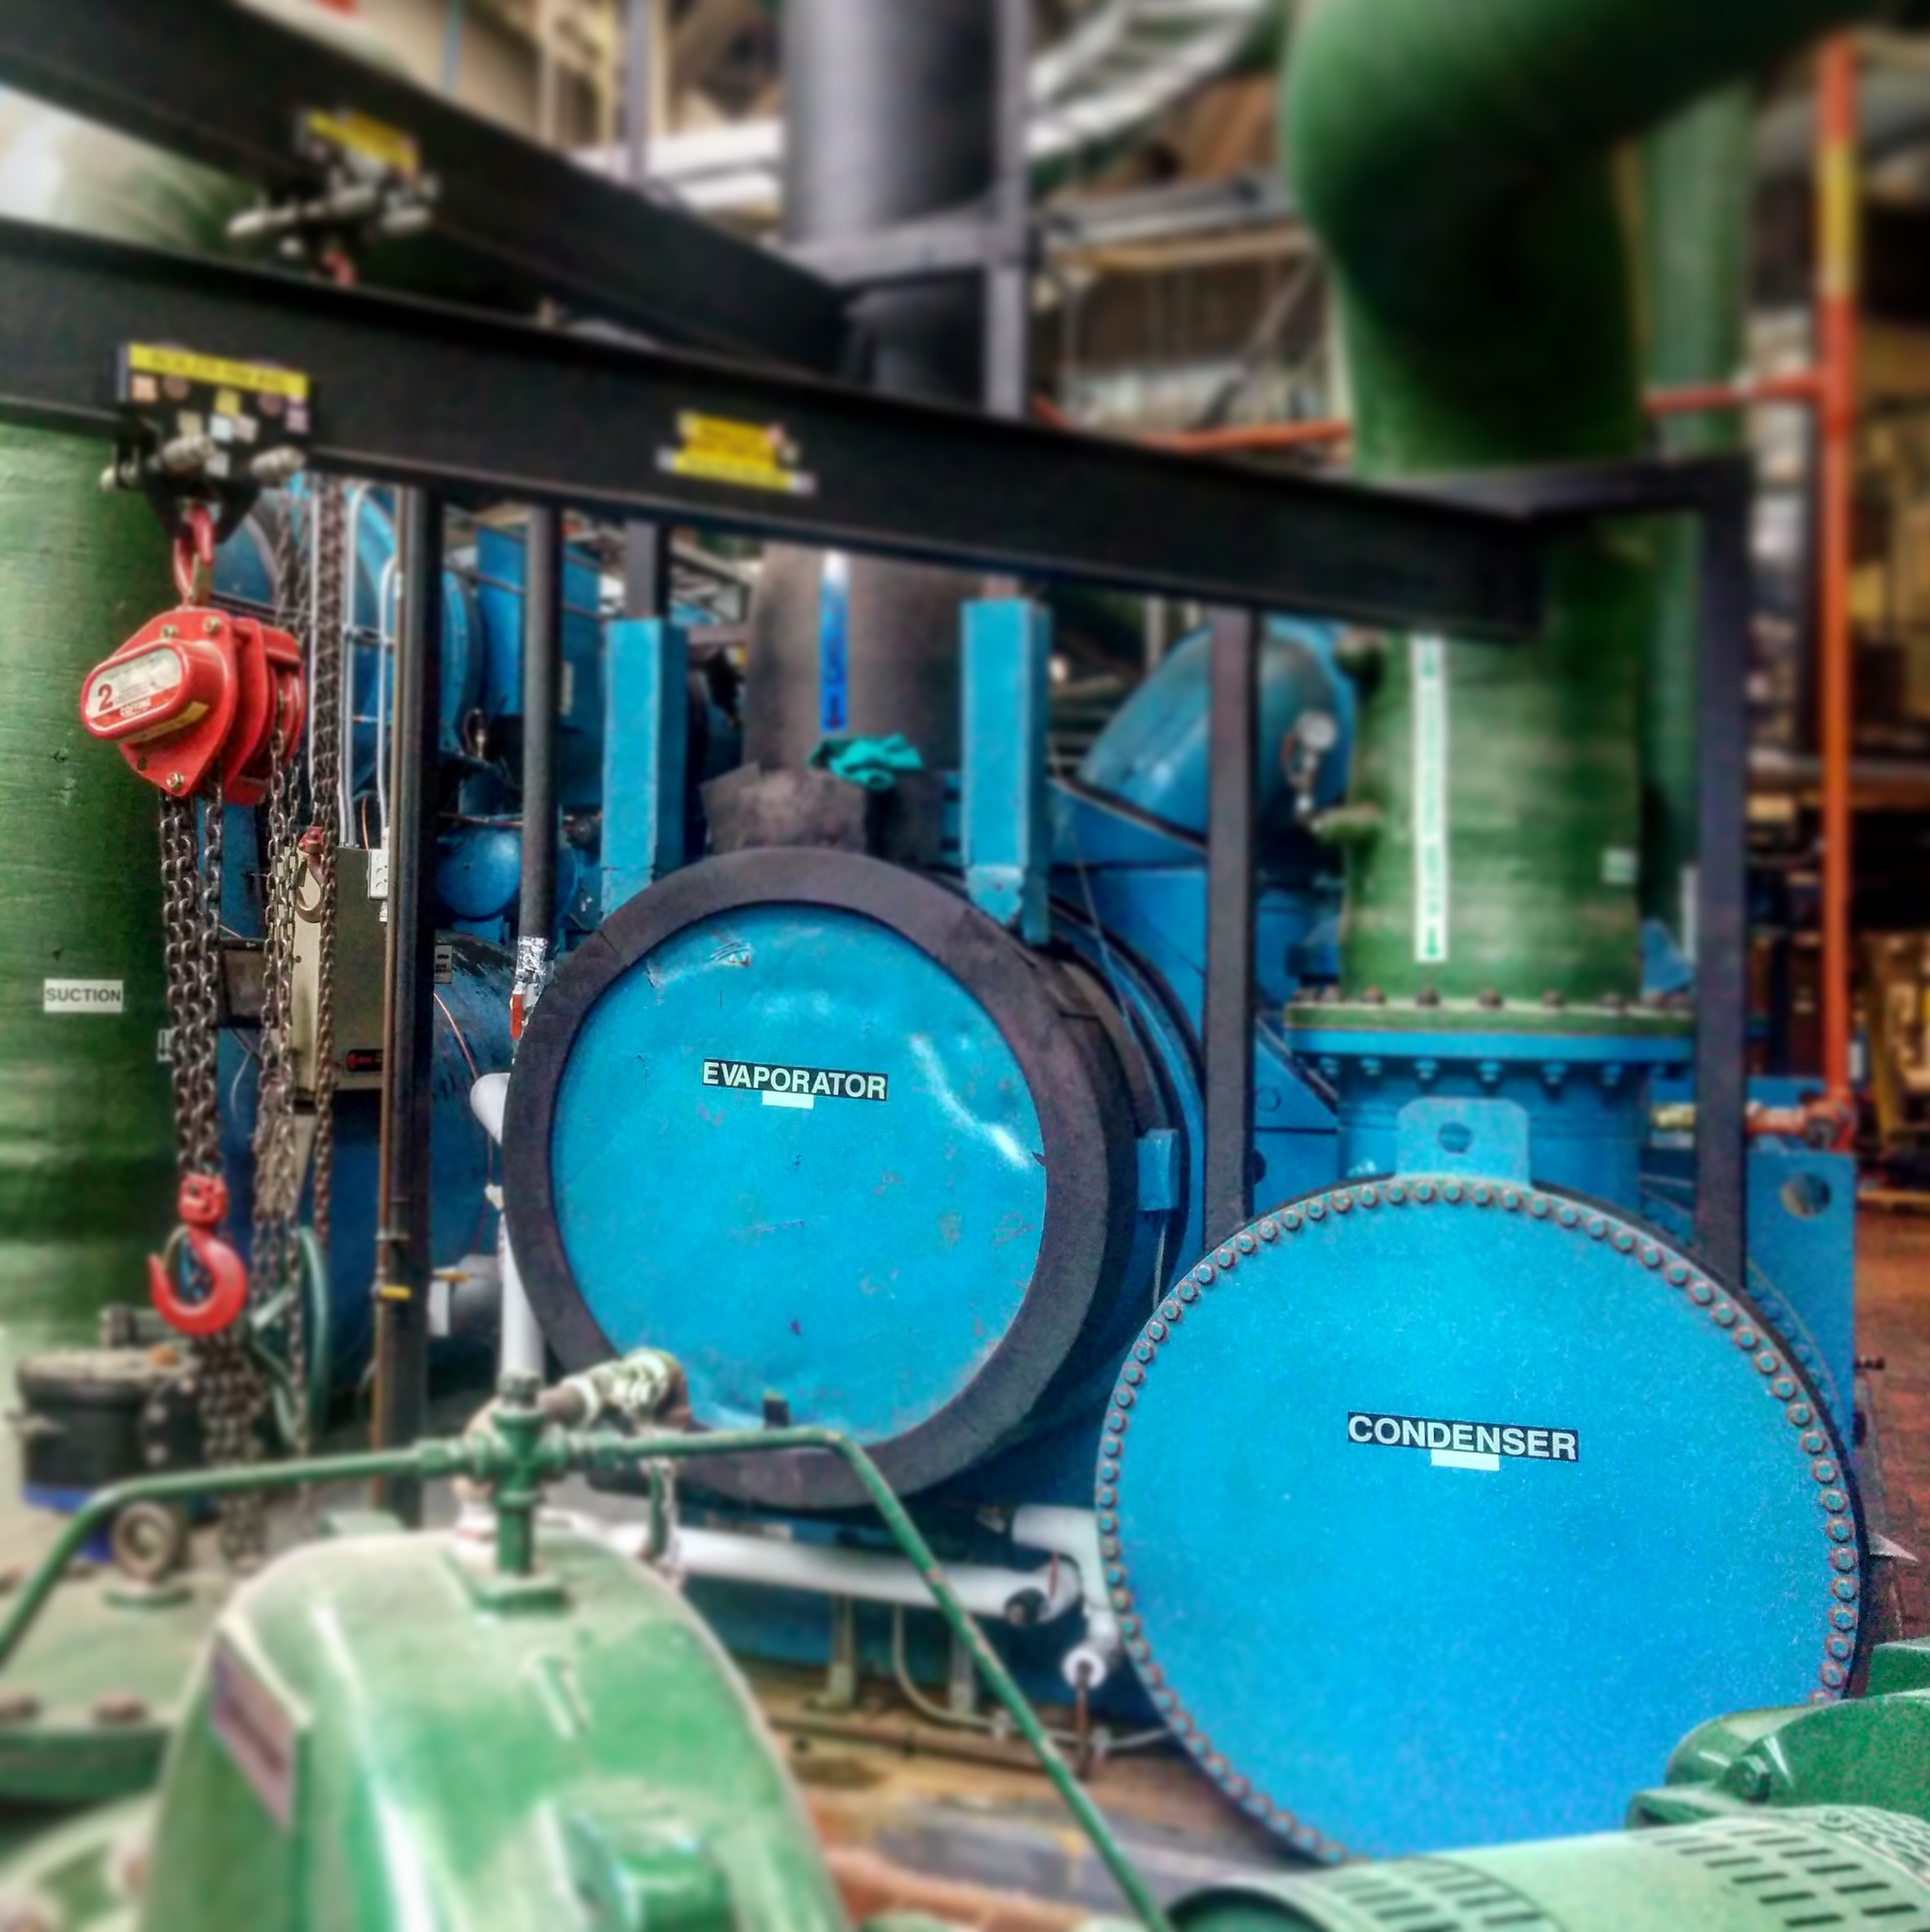 The chiller system in the Facilities power plant